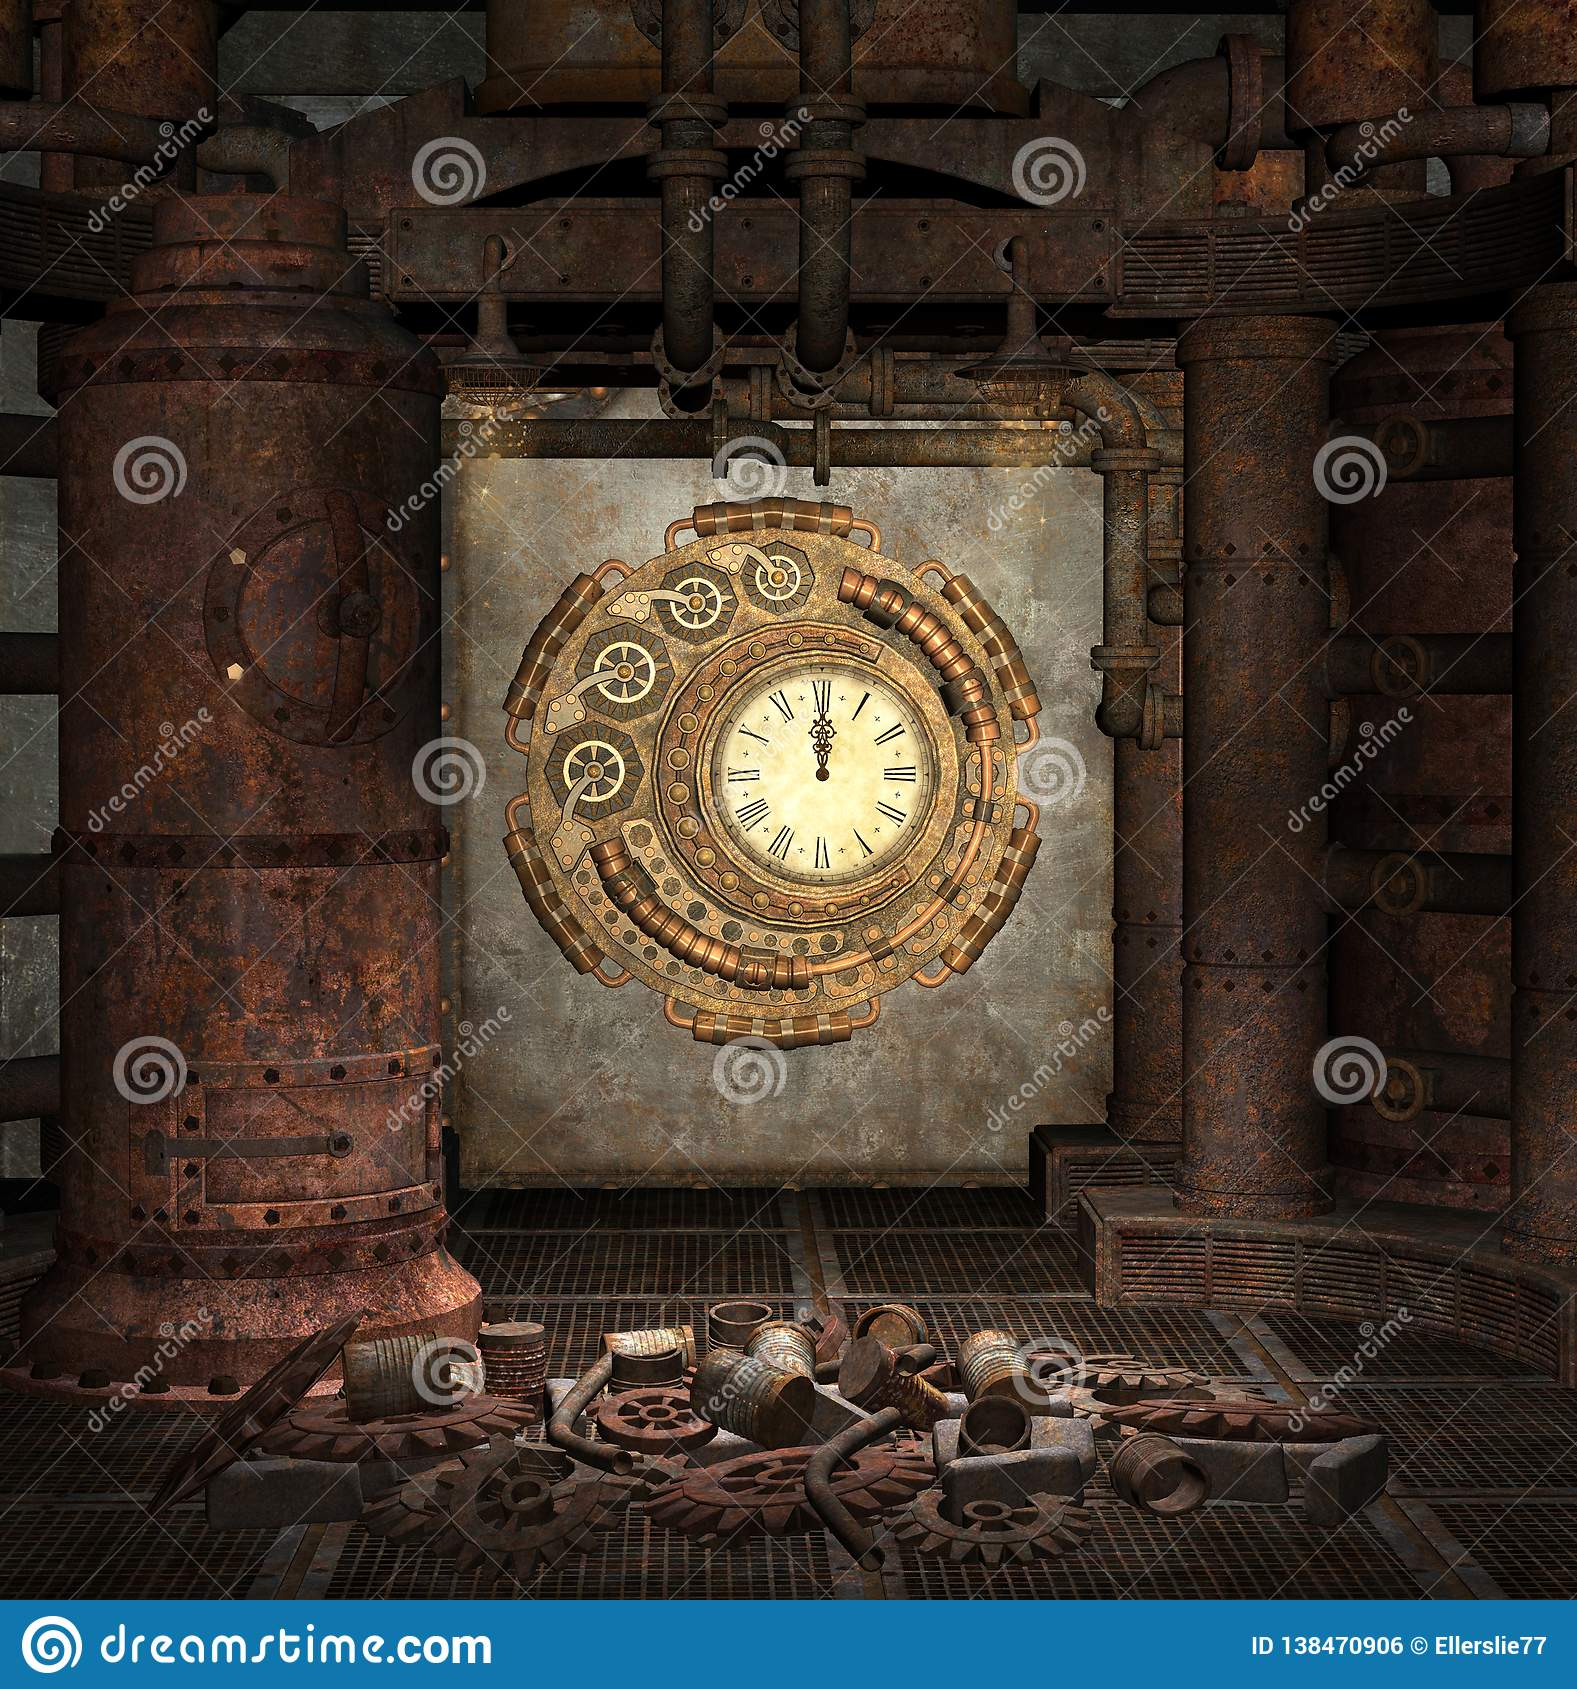 Steampunk clock old room with gears, cogs and rusty pipes